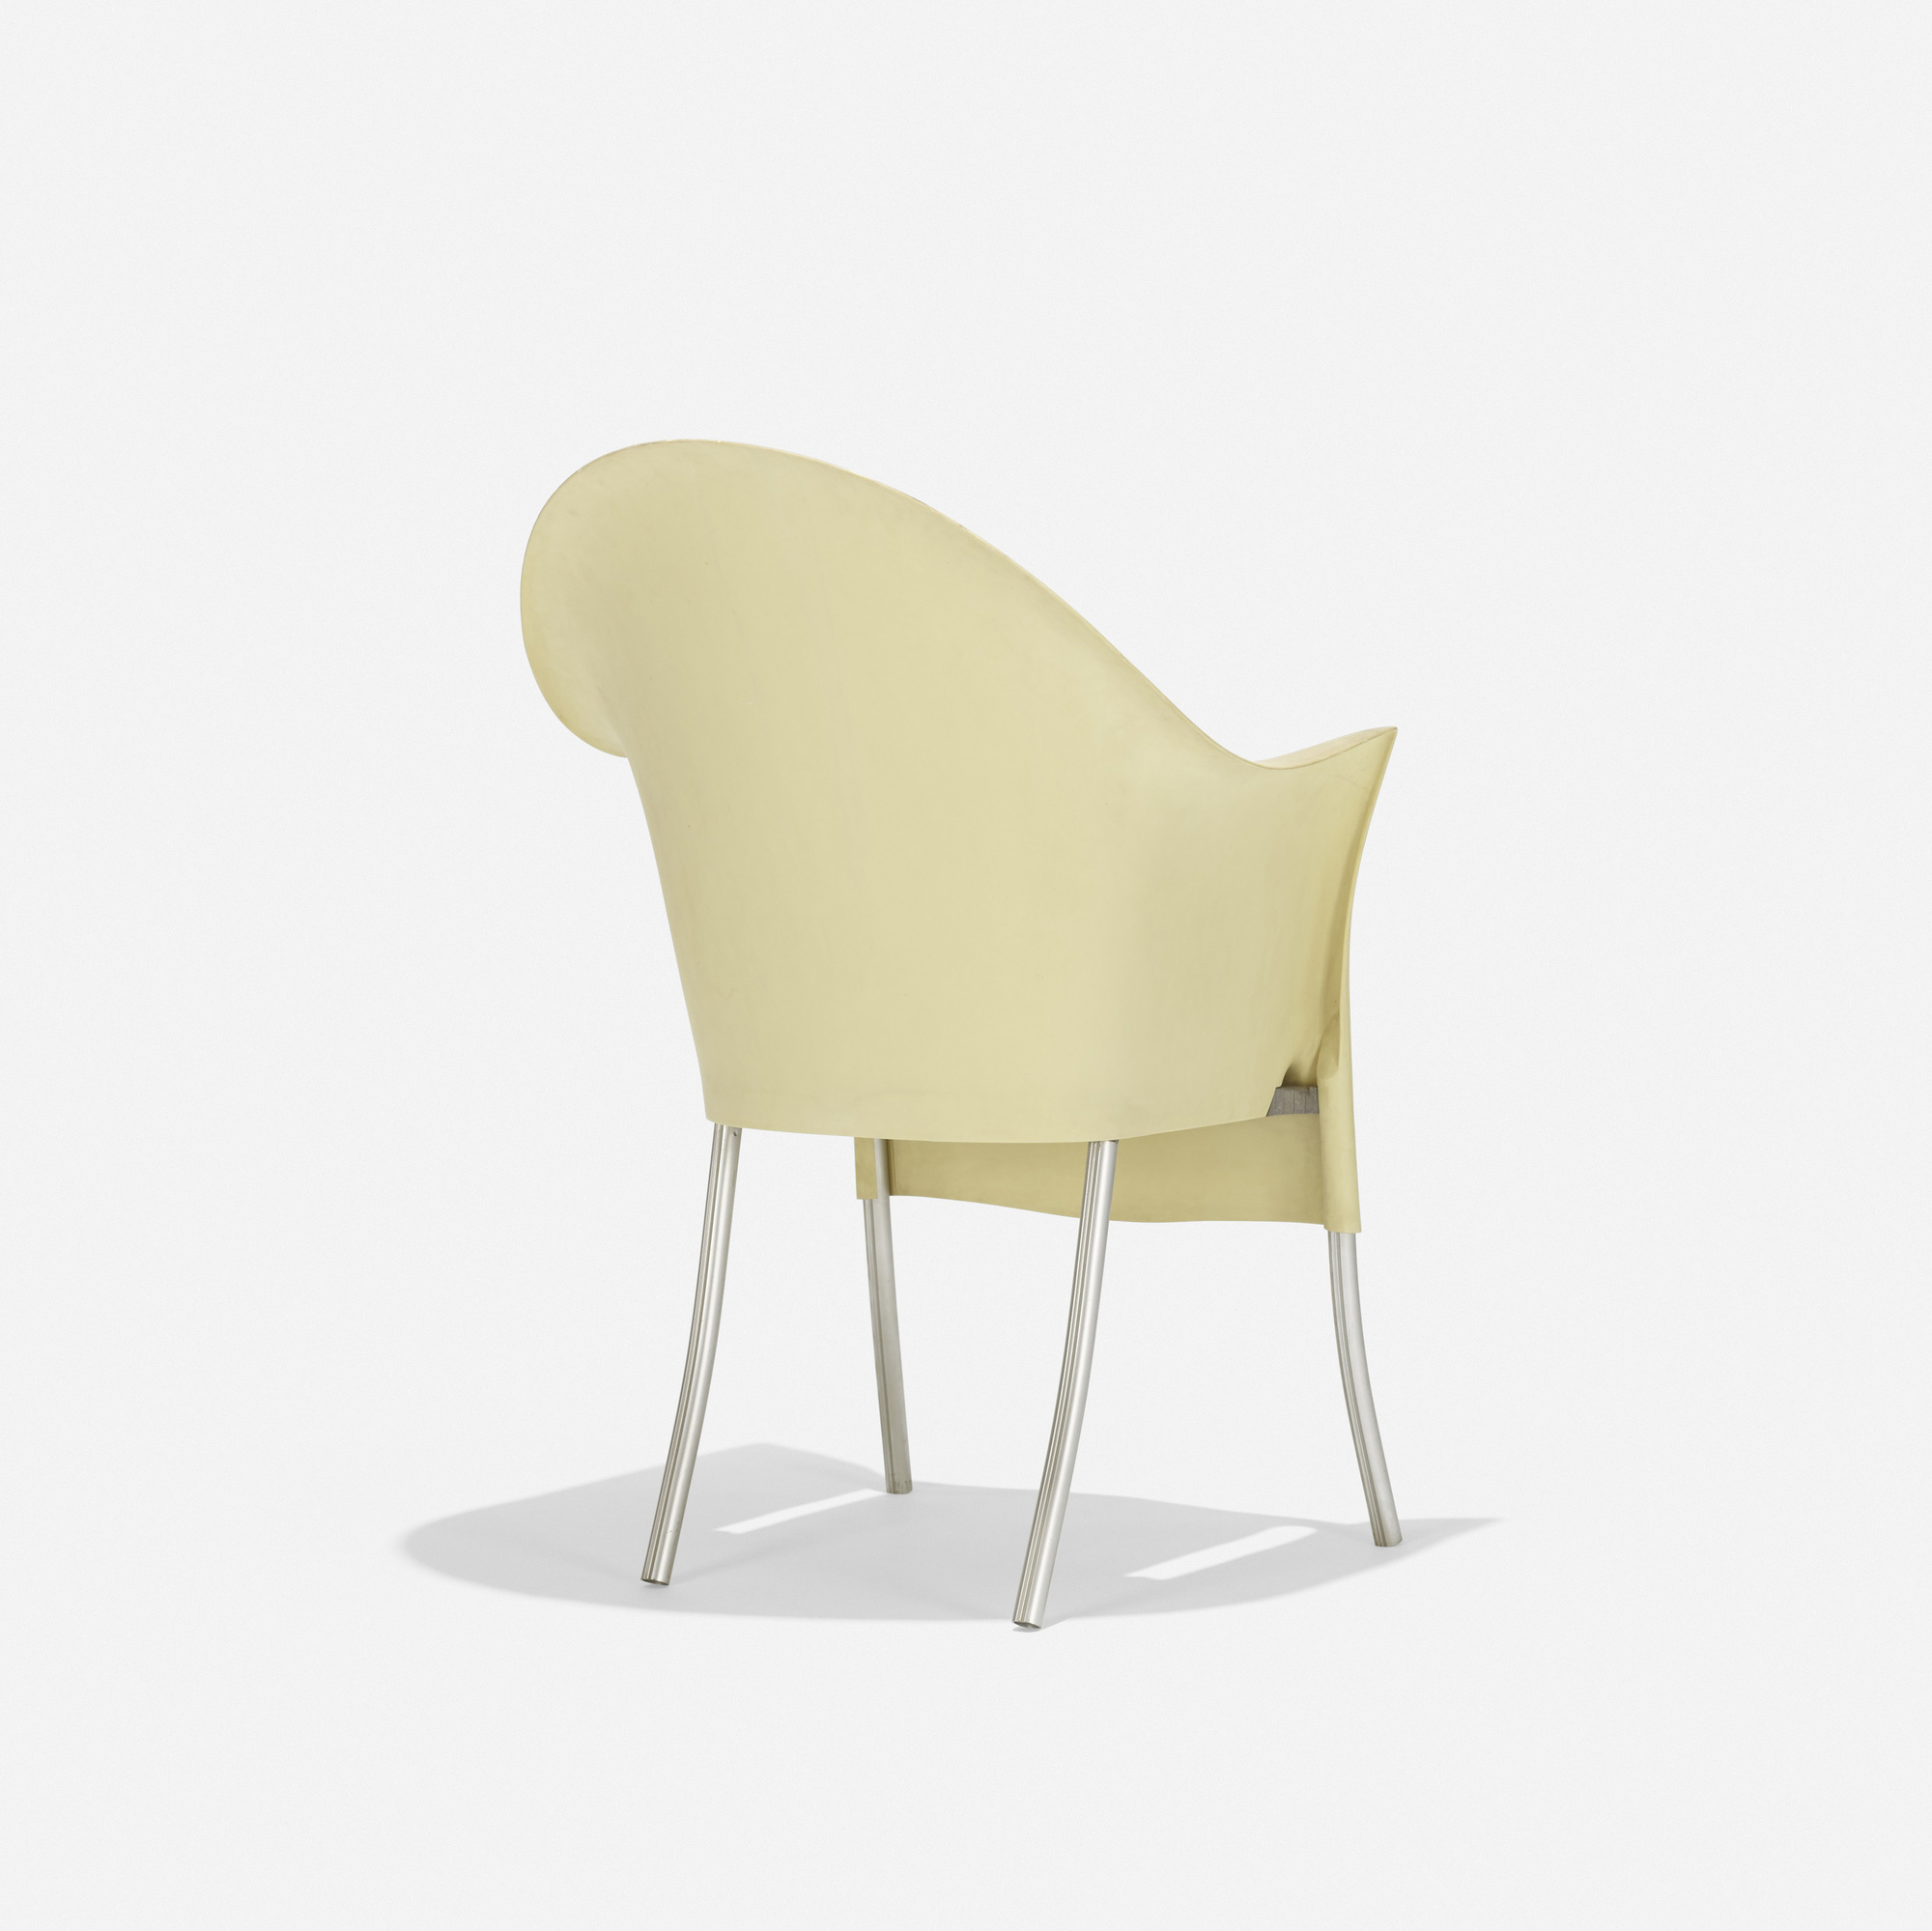 195: Philippe Starck / Lord Yo armchair (3 of 4)